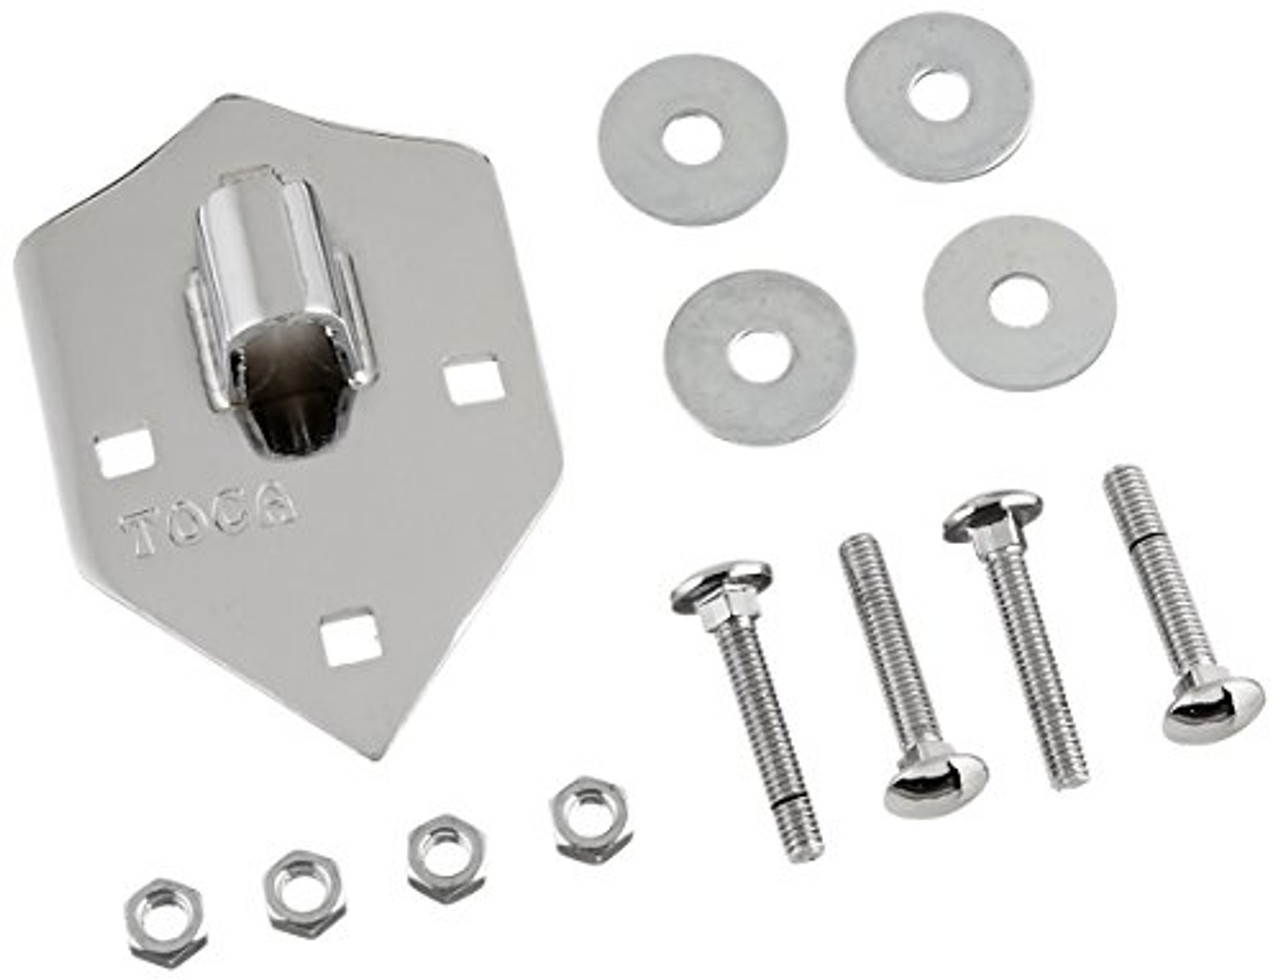 Toca a TP-38002-CN New Style Conga Side Plates with Carriage Bolts for Wood Series - Chrome